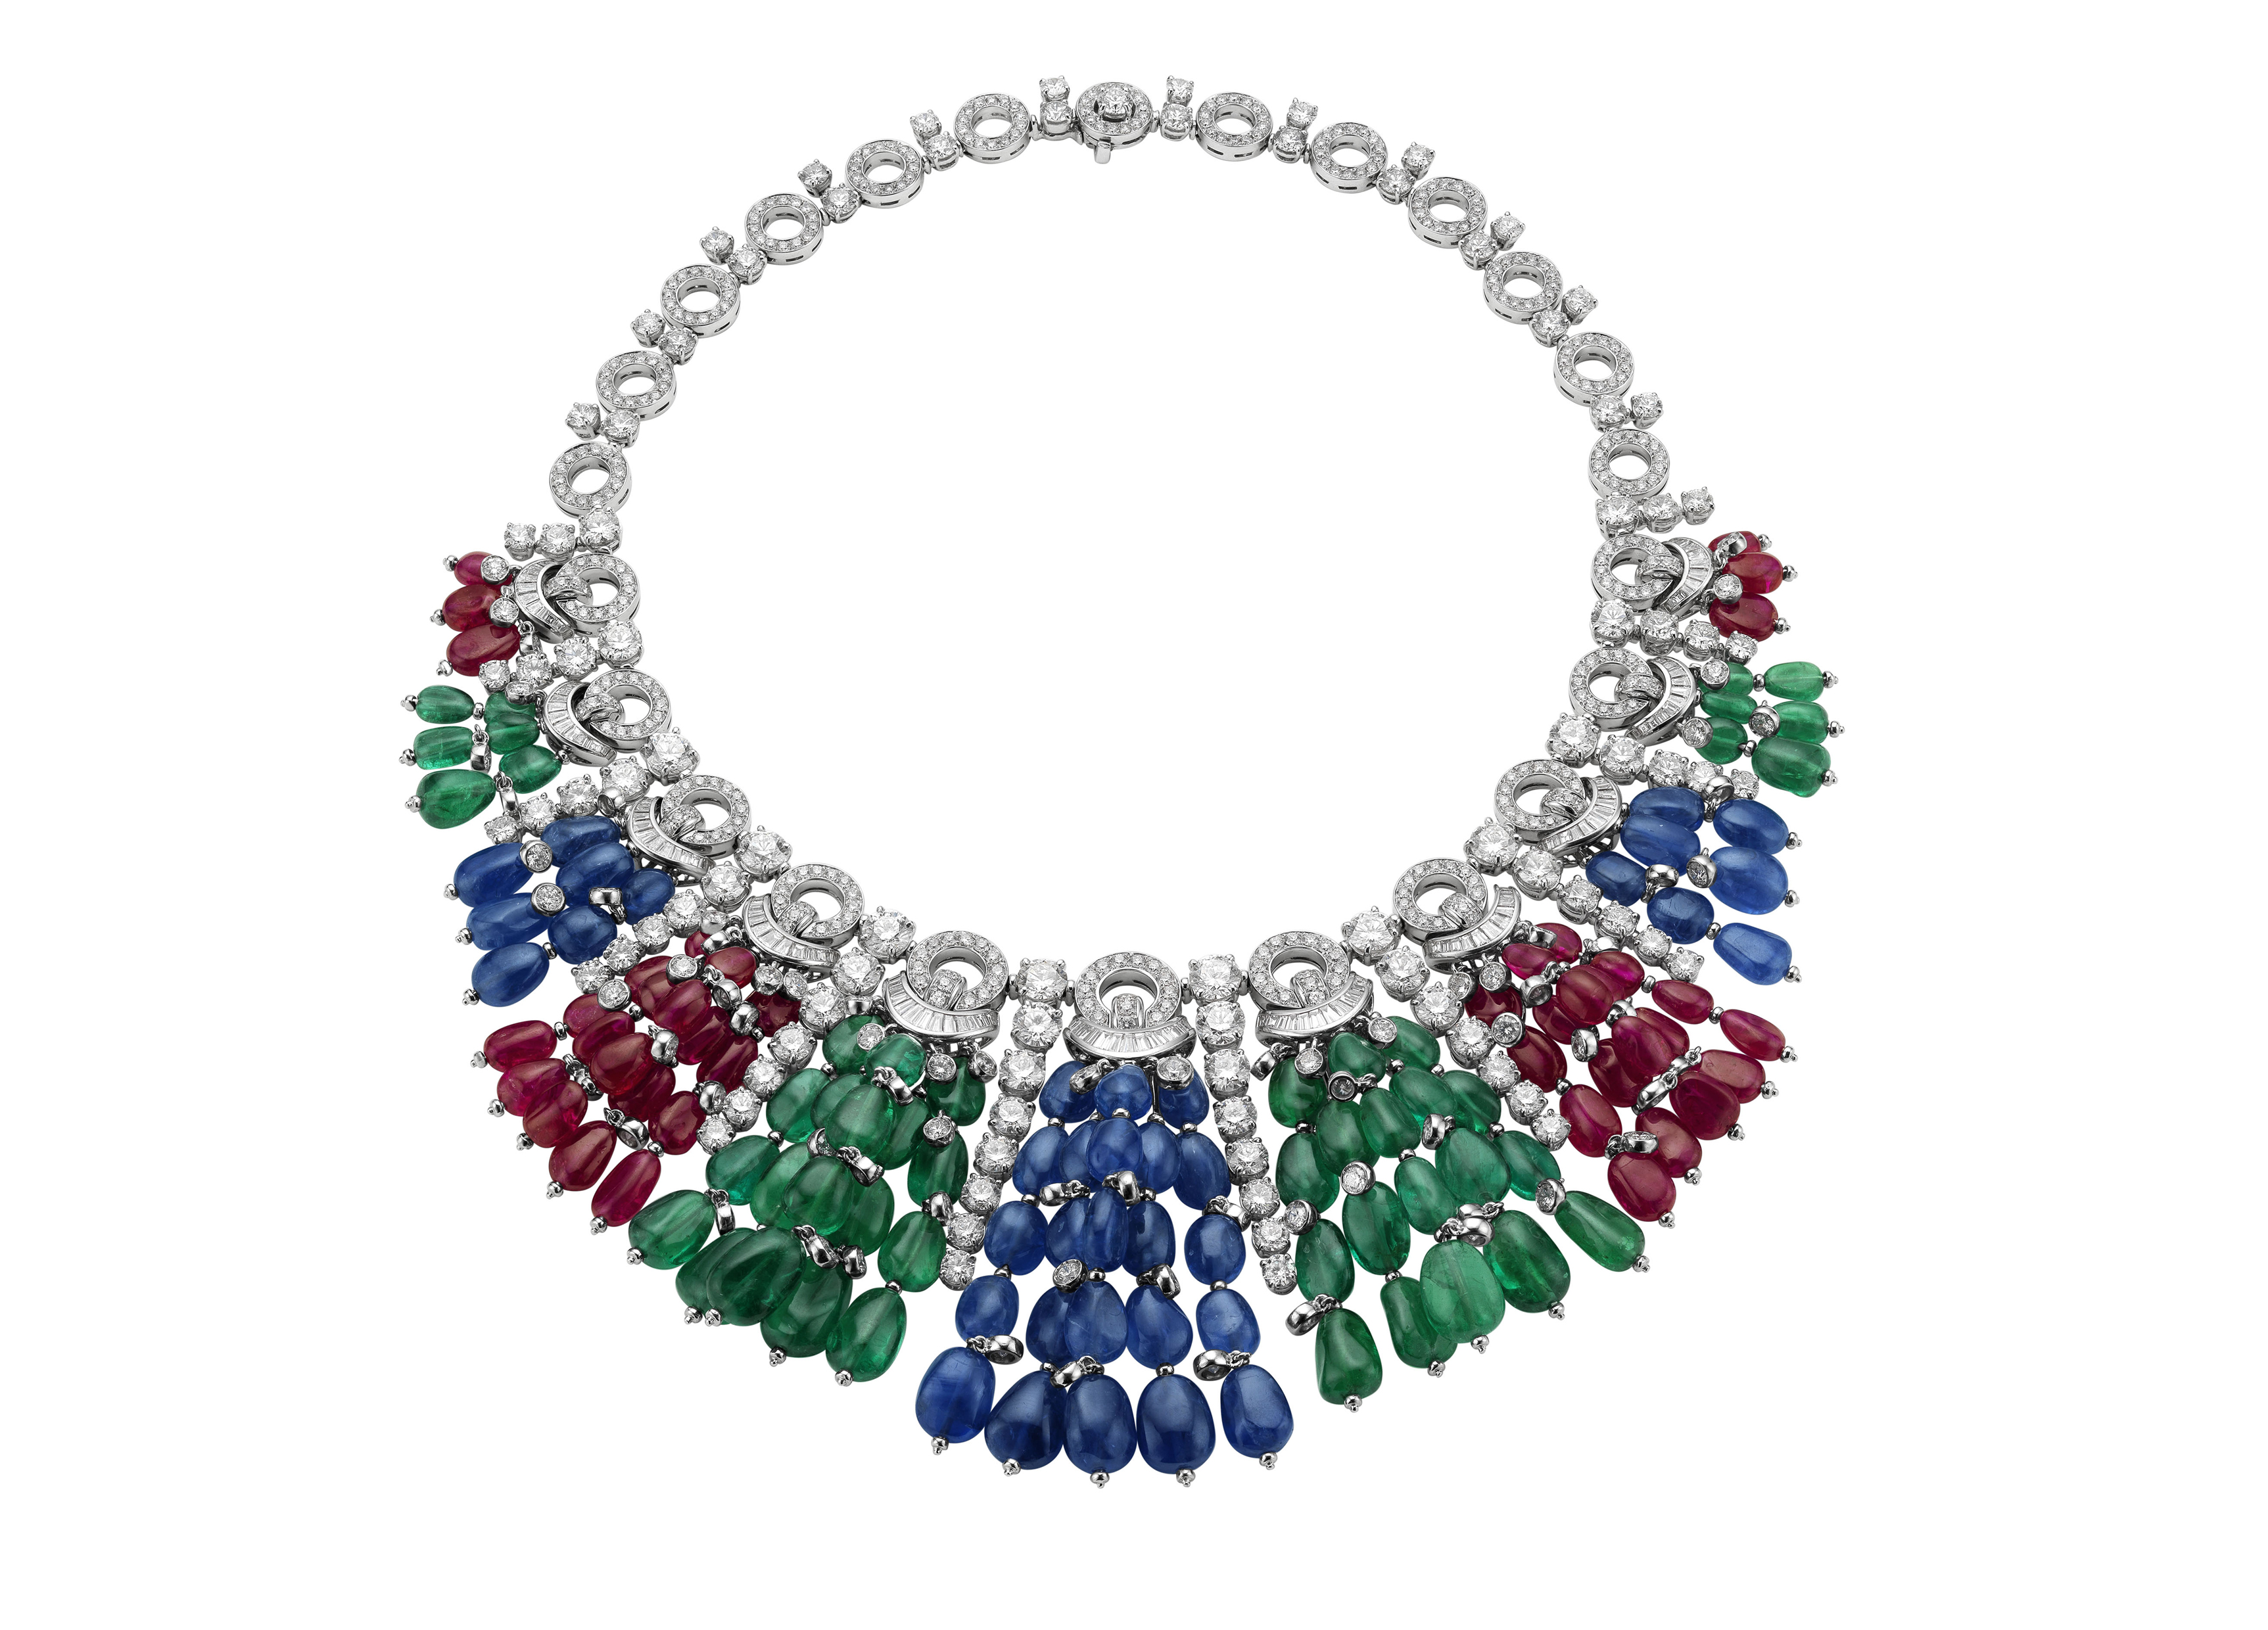 Necklace in yellow gold with 7 emeralds 129,48 cts, garnets 95,15 cts ,1 drop of emerald 3,90 cts, round brilliant cut diamonds 36,85 cts ,pear shaped diamonds 9,12 cts ,diamond baguettes 1,20 cts and round brilliant cut diamonds 1,45 cts